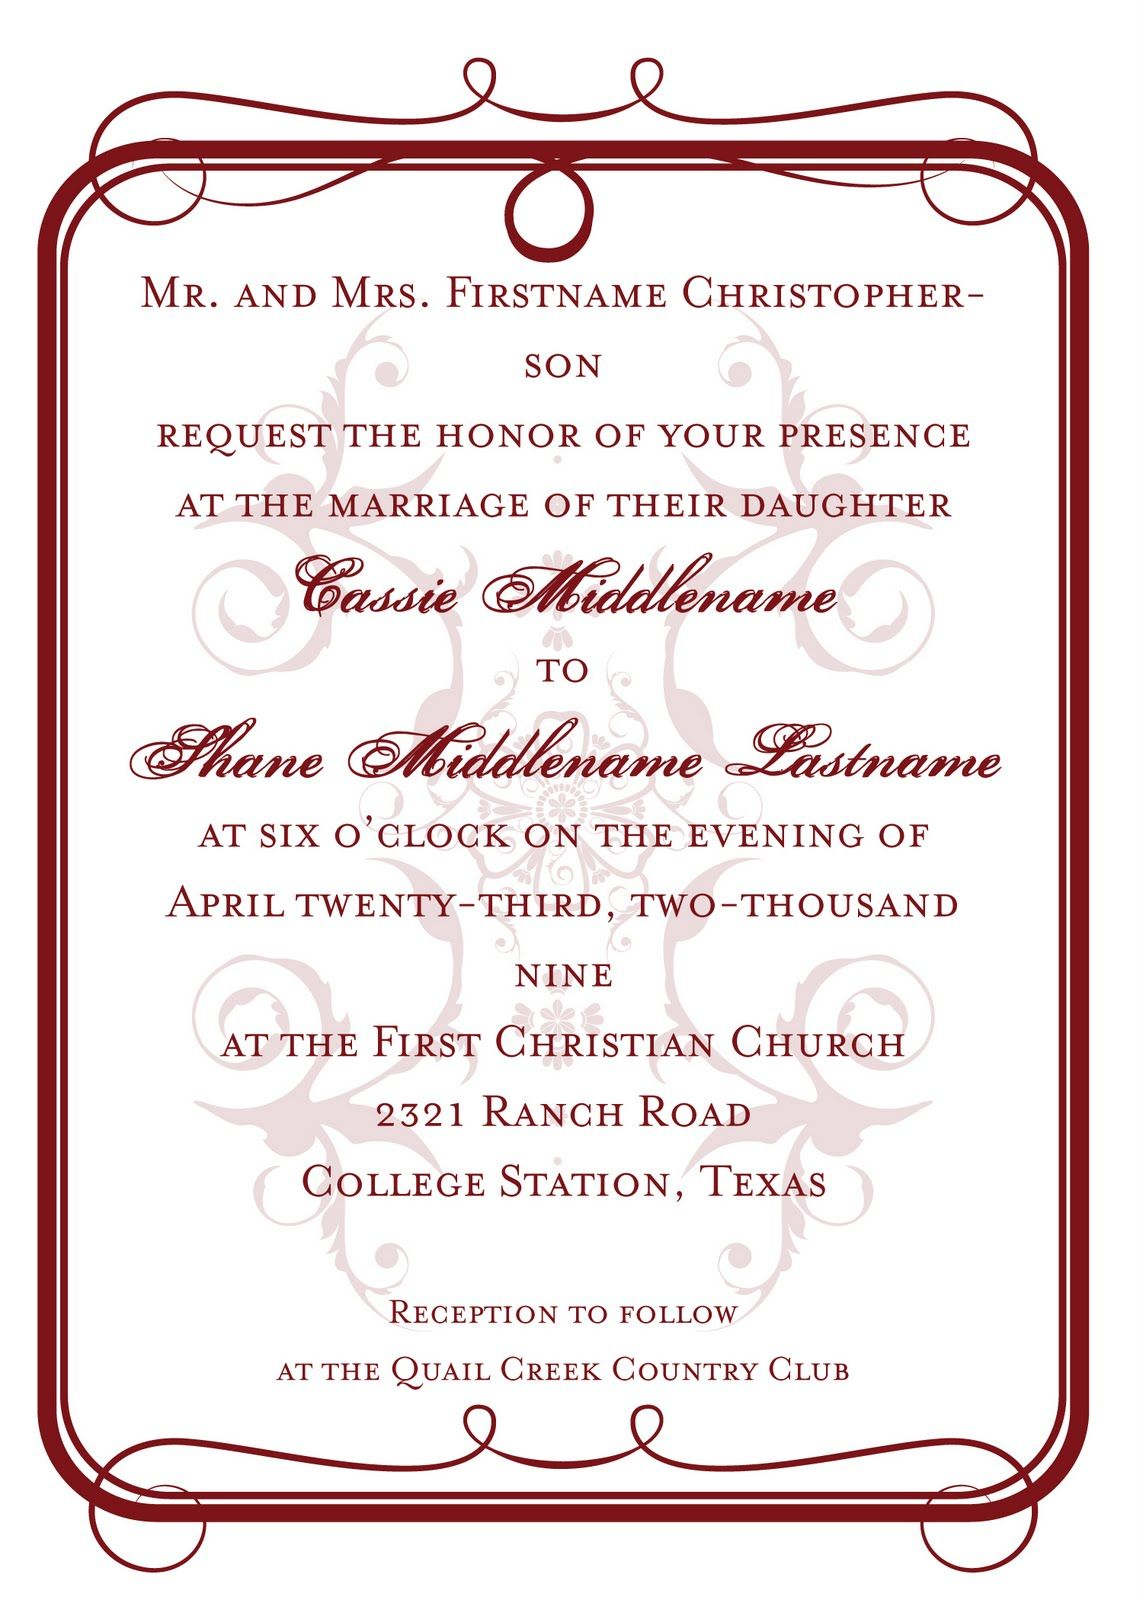 Semi formal invitations google search invitations pinterest semi formal invitations google search stopboris Image collections